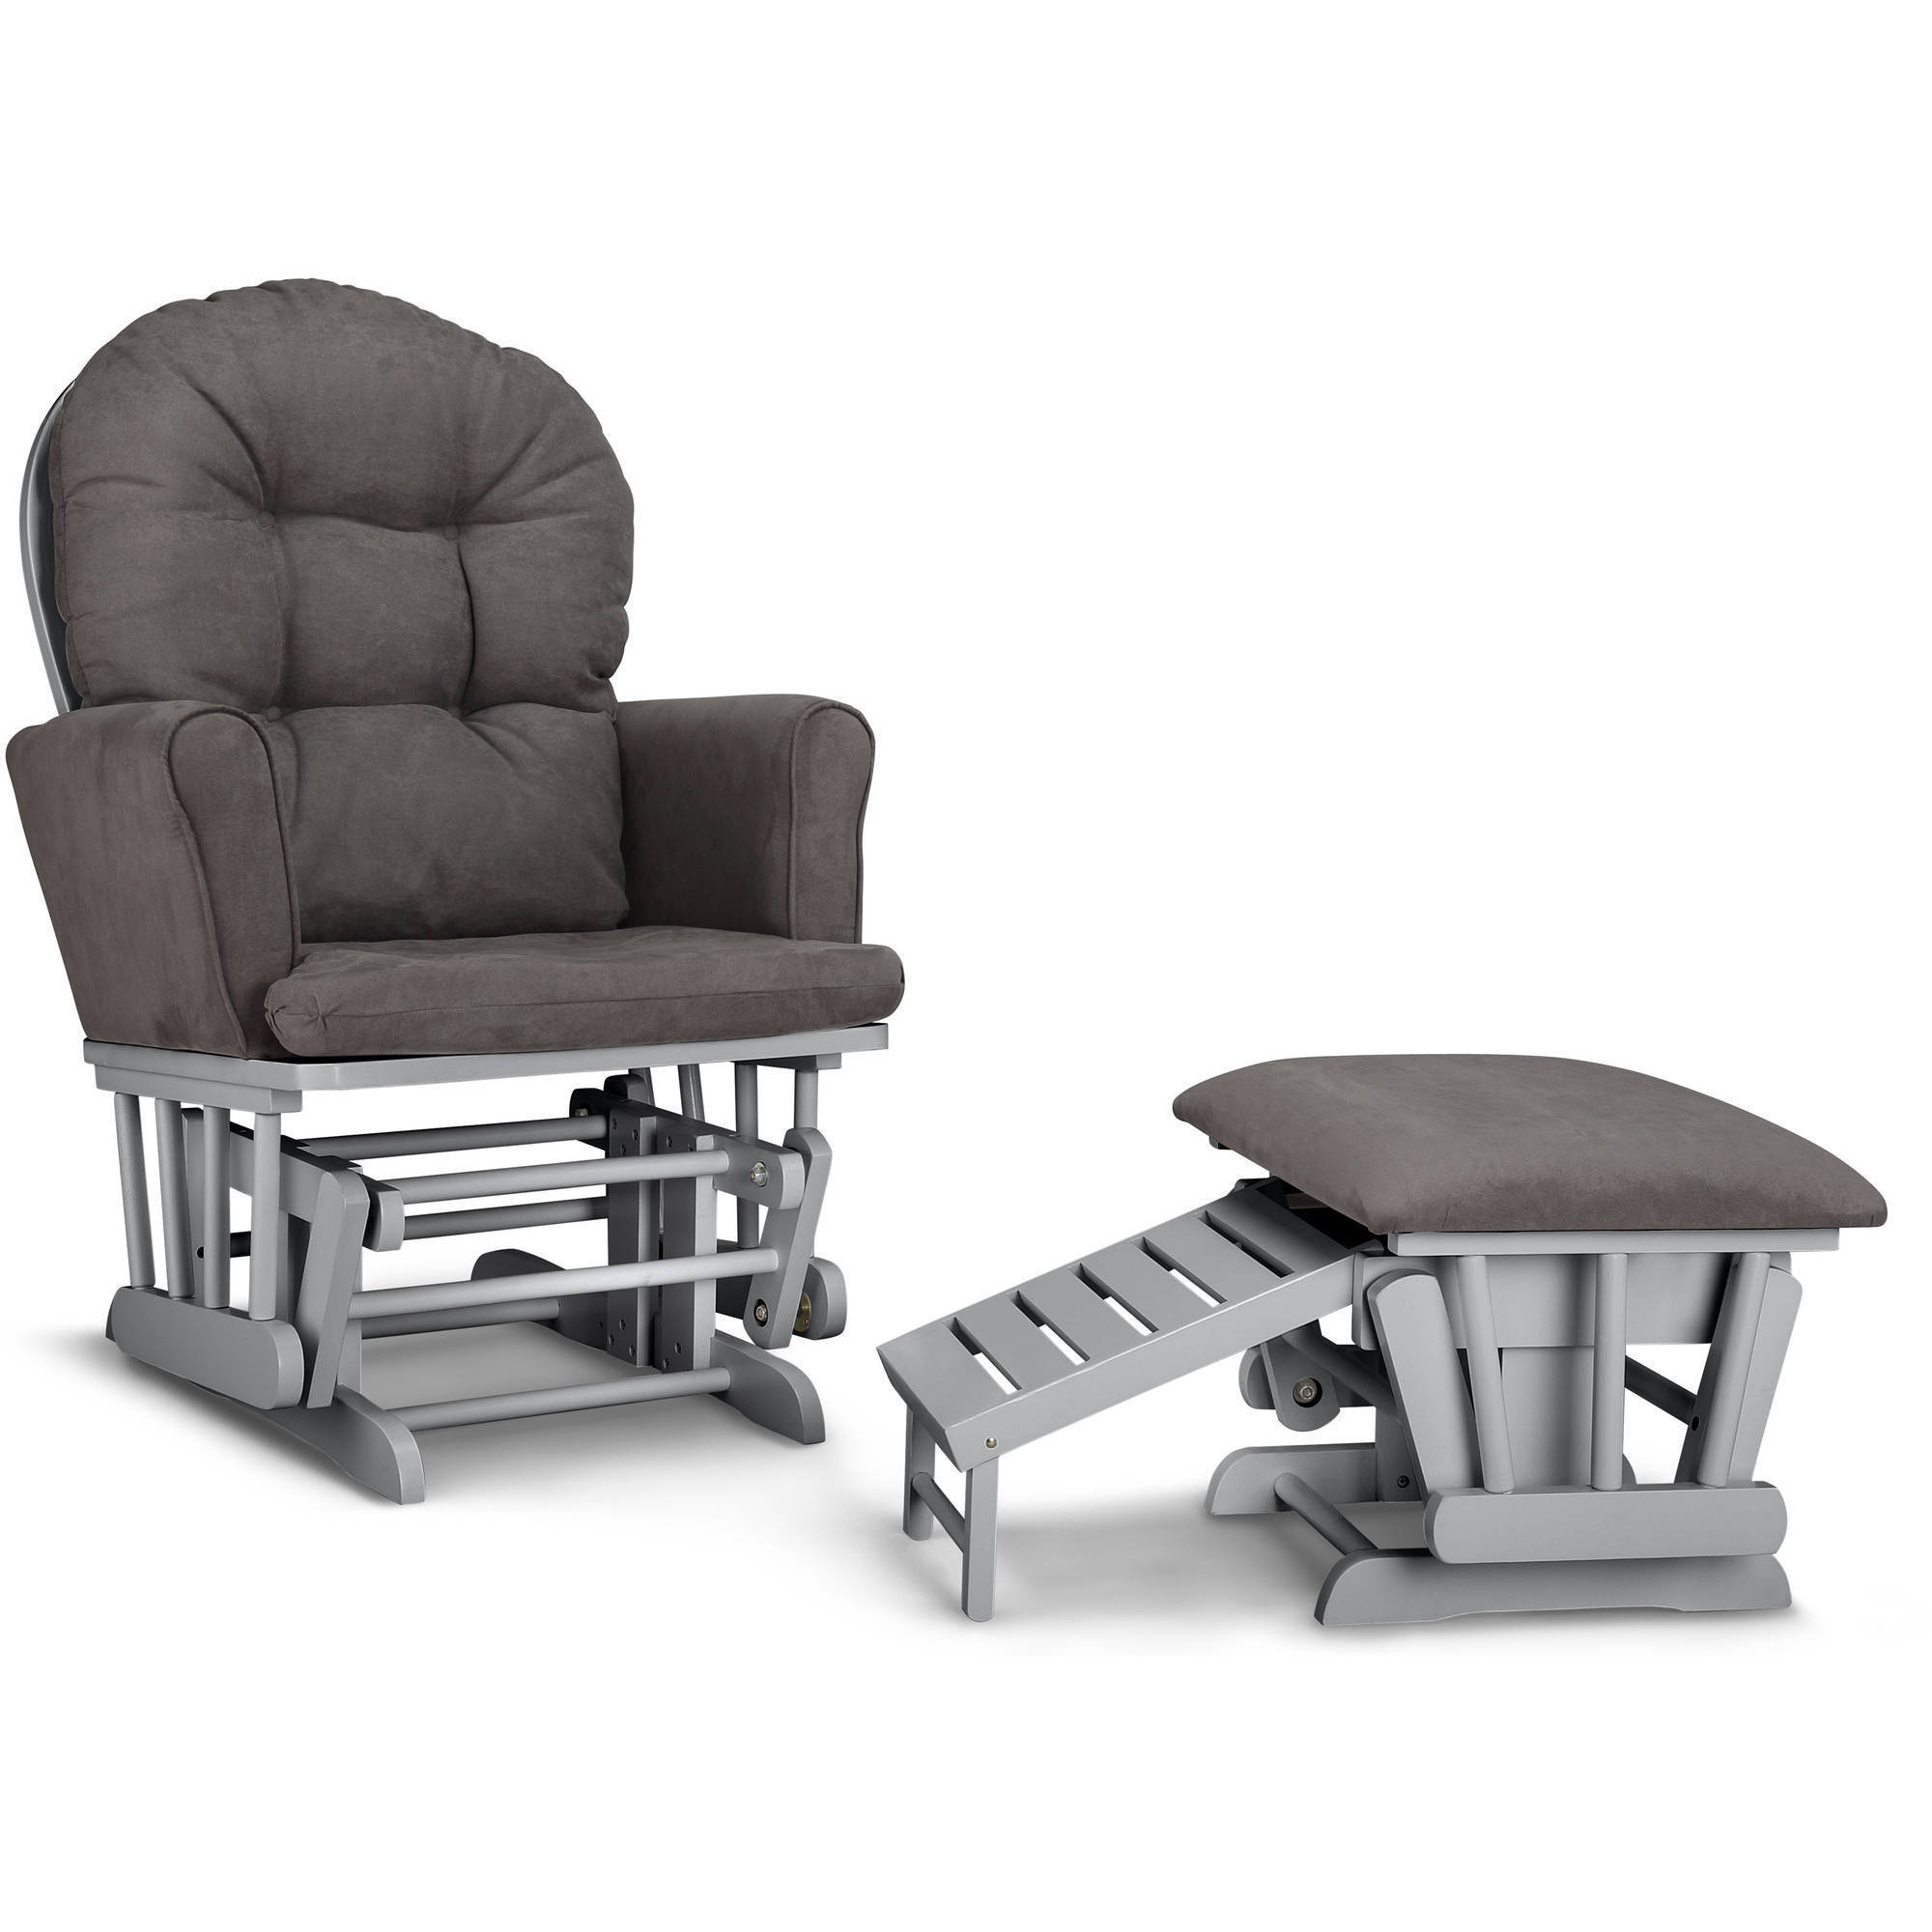 Beau Graco Parker Semi Upholstered Glider And Ottoman White With Gray Cushions    Walmart.com